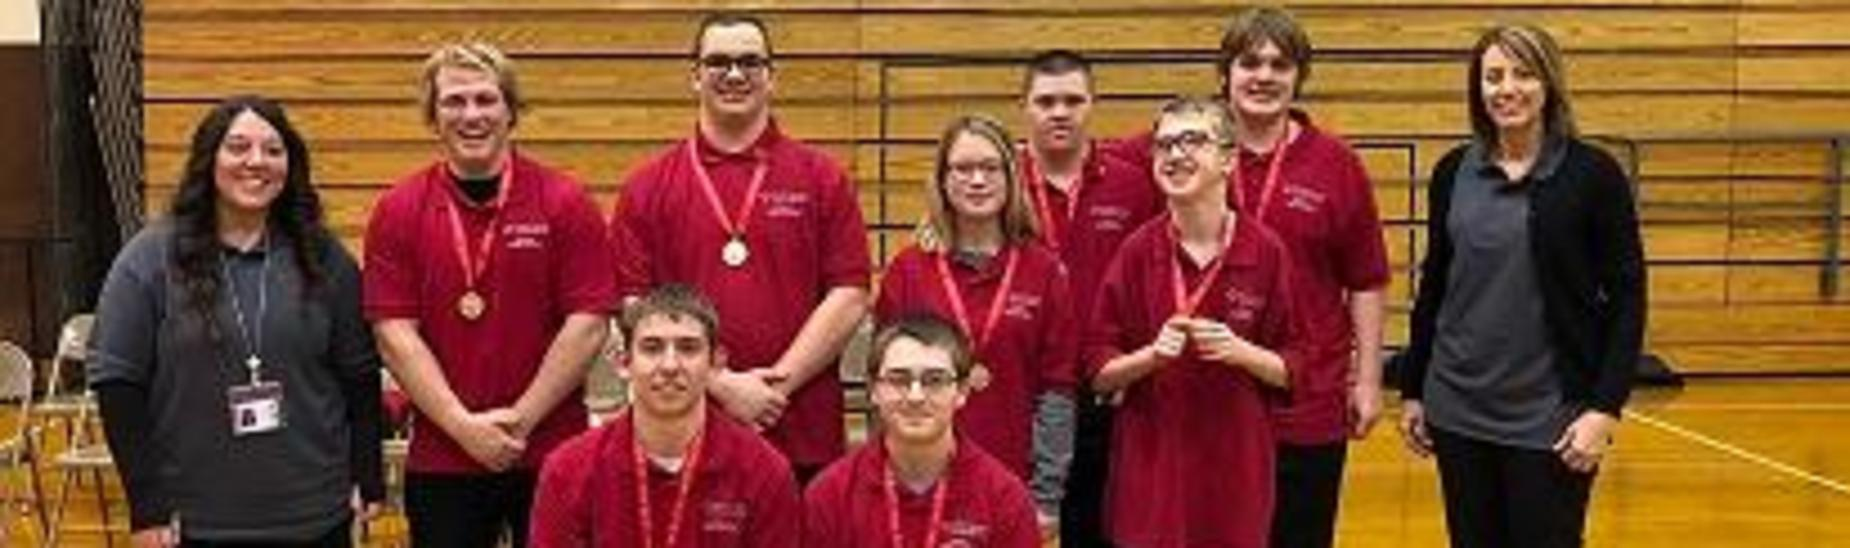 Bocce Ball Team after winning the Blair County Championship on 2/25/2019